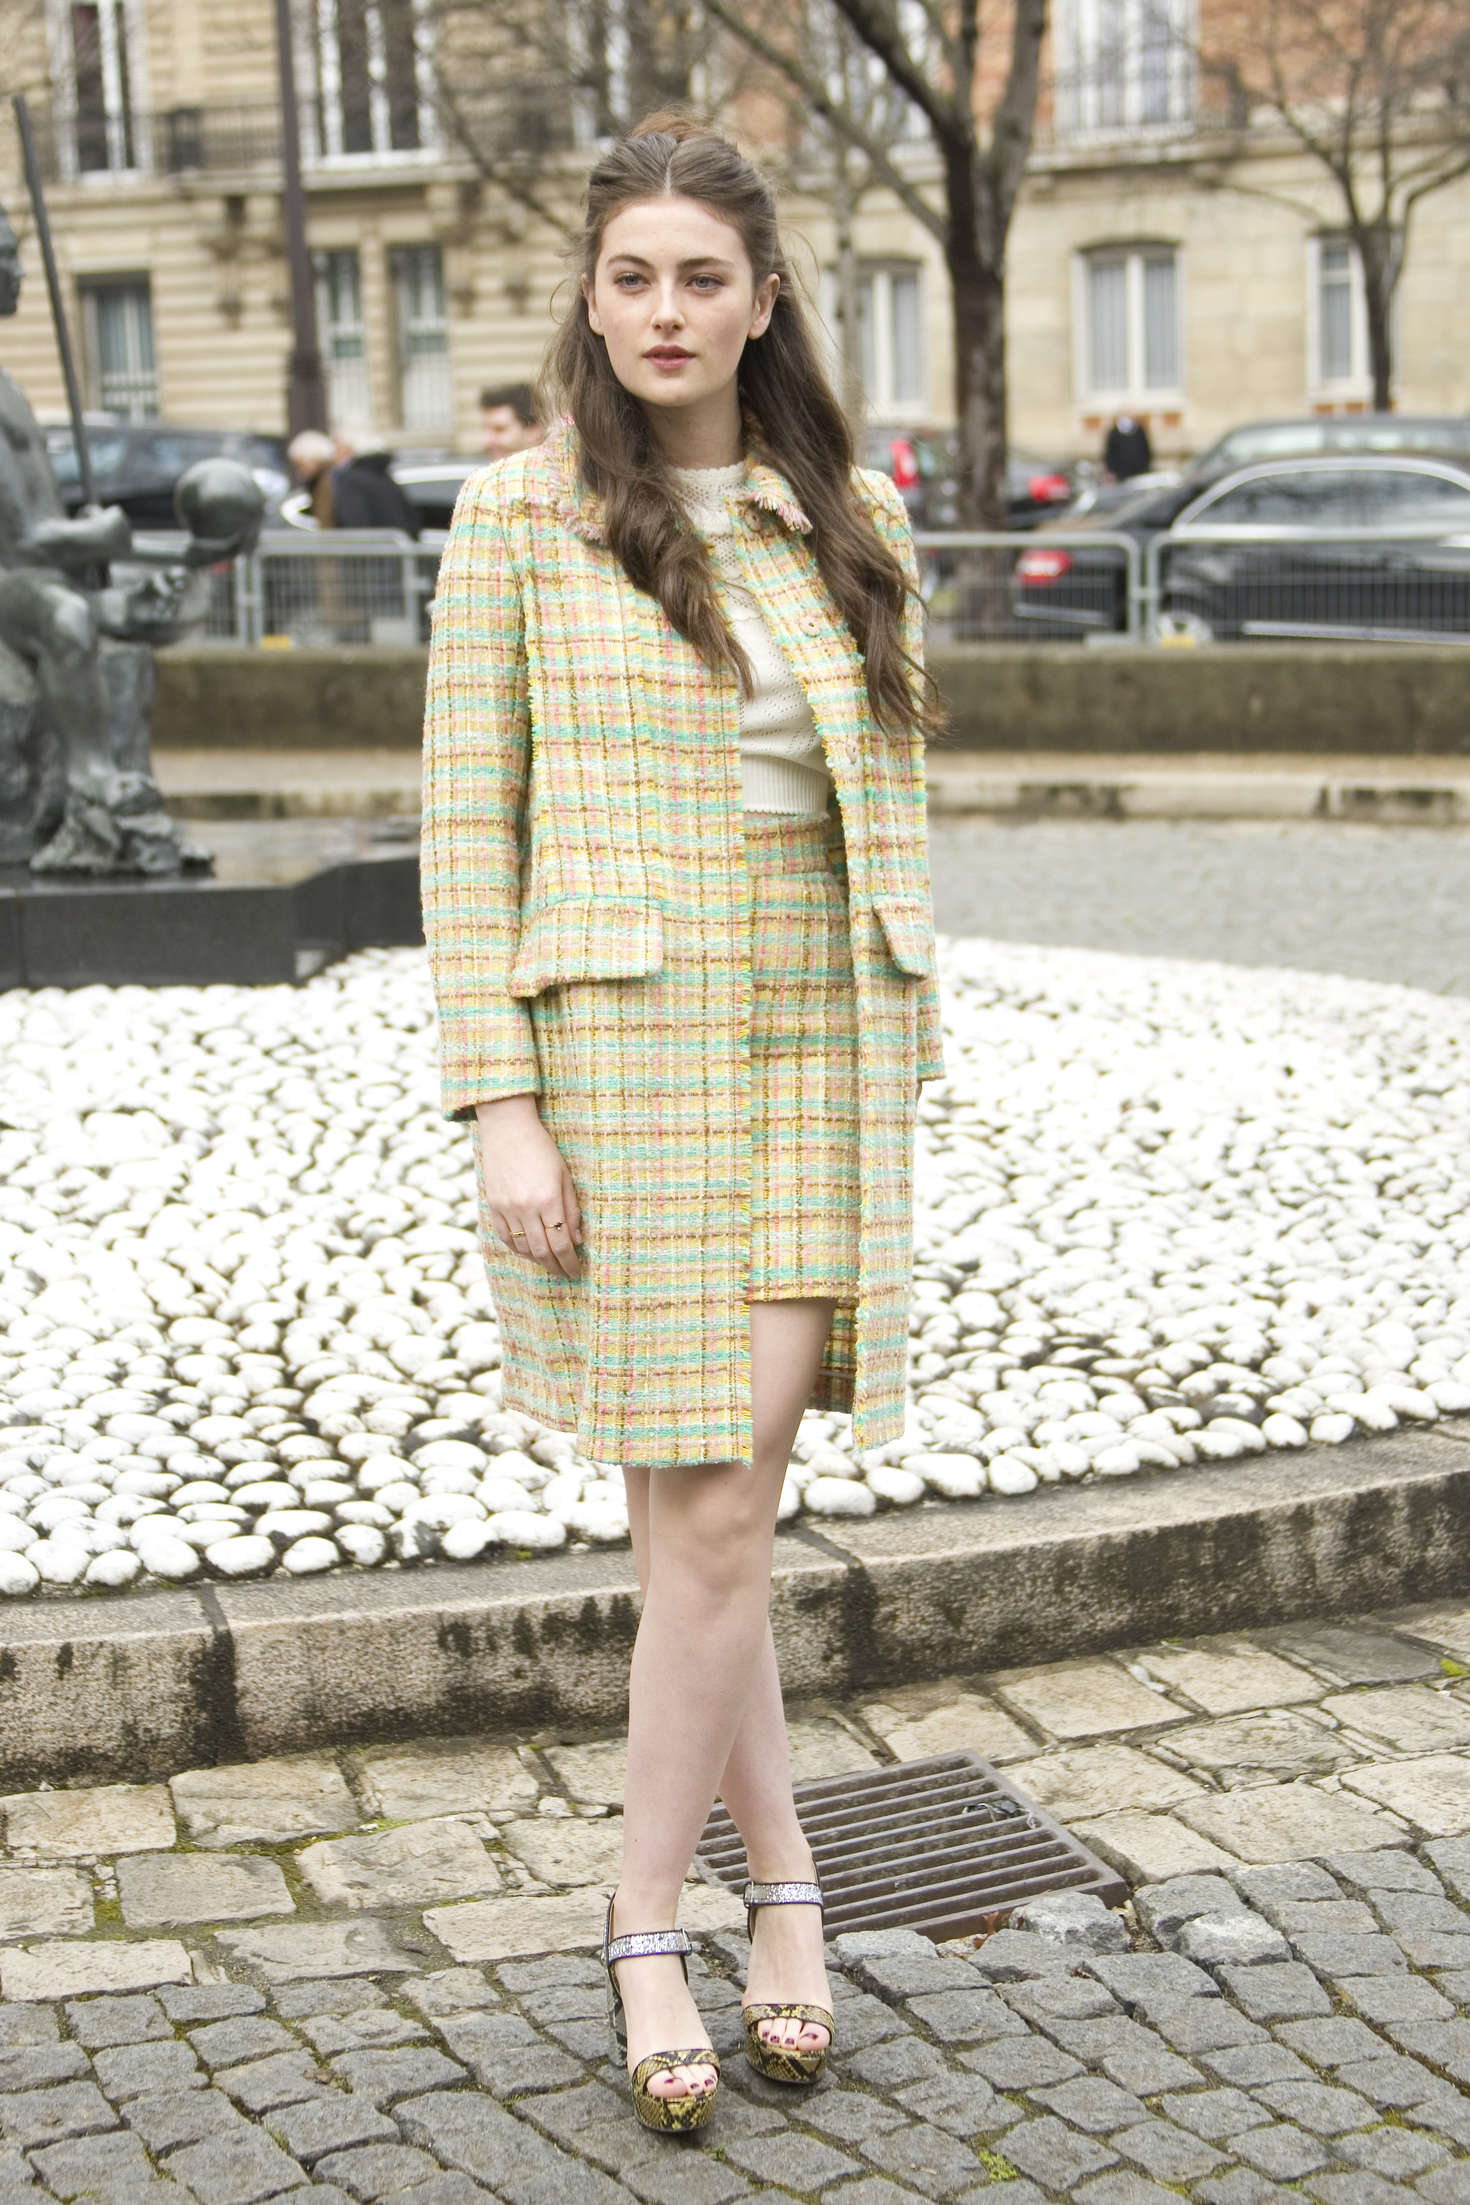 Millie Brady Arrives at Miu Miu Fashion Show in Paris